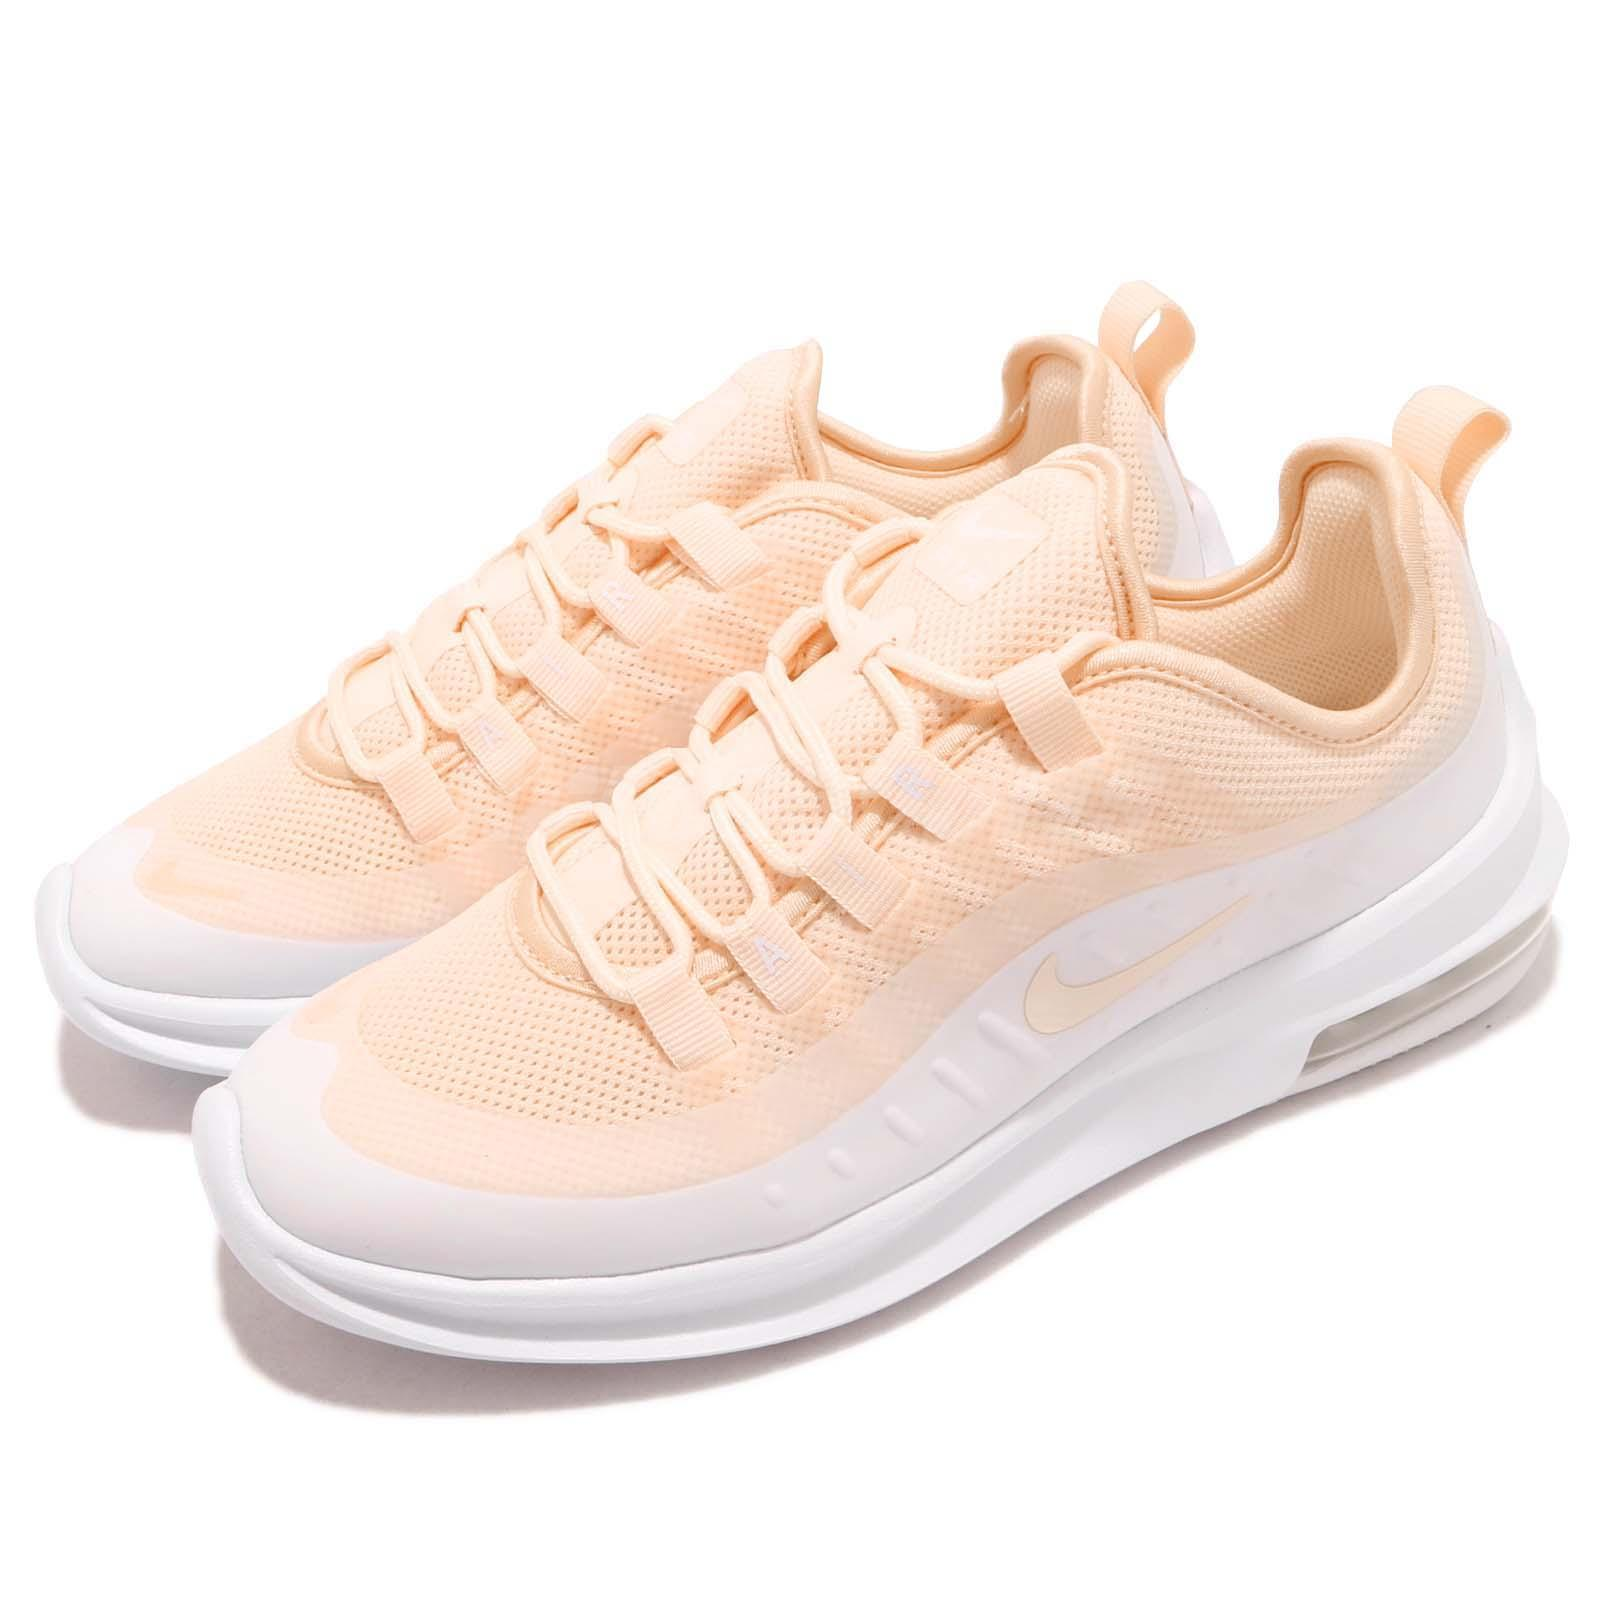 6625709c1eada3 Details about Nike Wmns Air Max Axis Guava Ice White Women Running Shoes  Sneakers AA2168-800